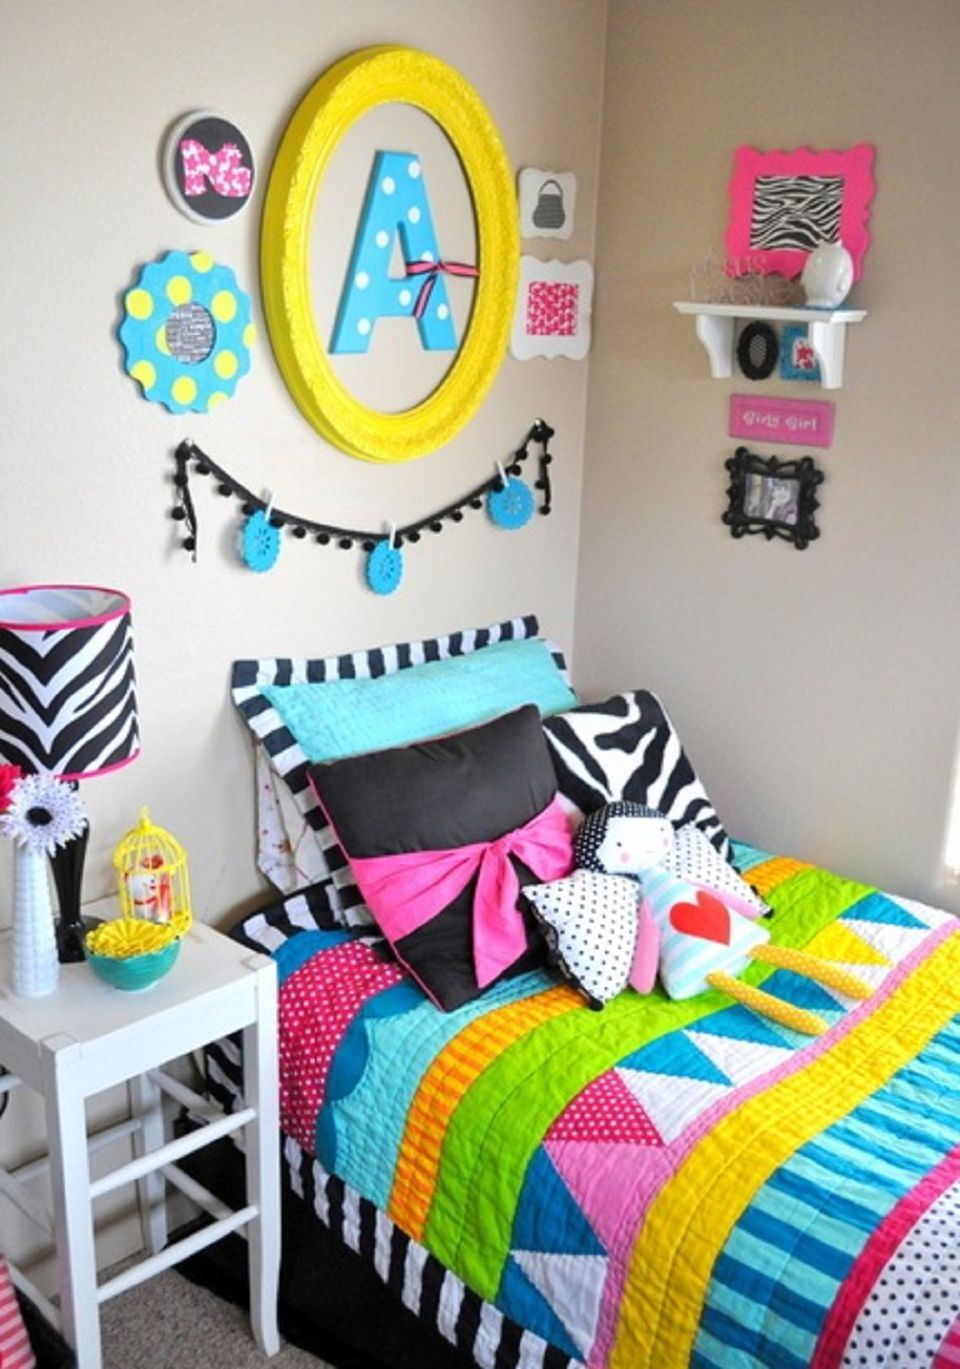 little girl bedroom. Colorful girl s bedroom Ideas for Decorating a Little Girl Bedroom